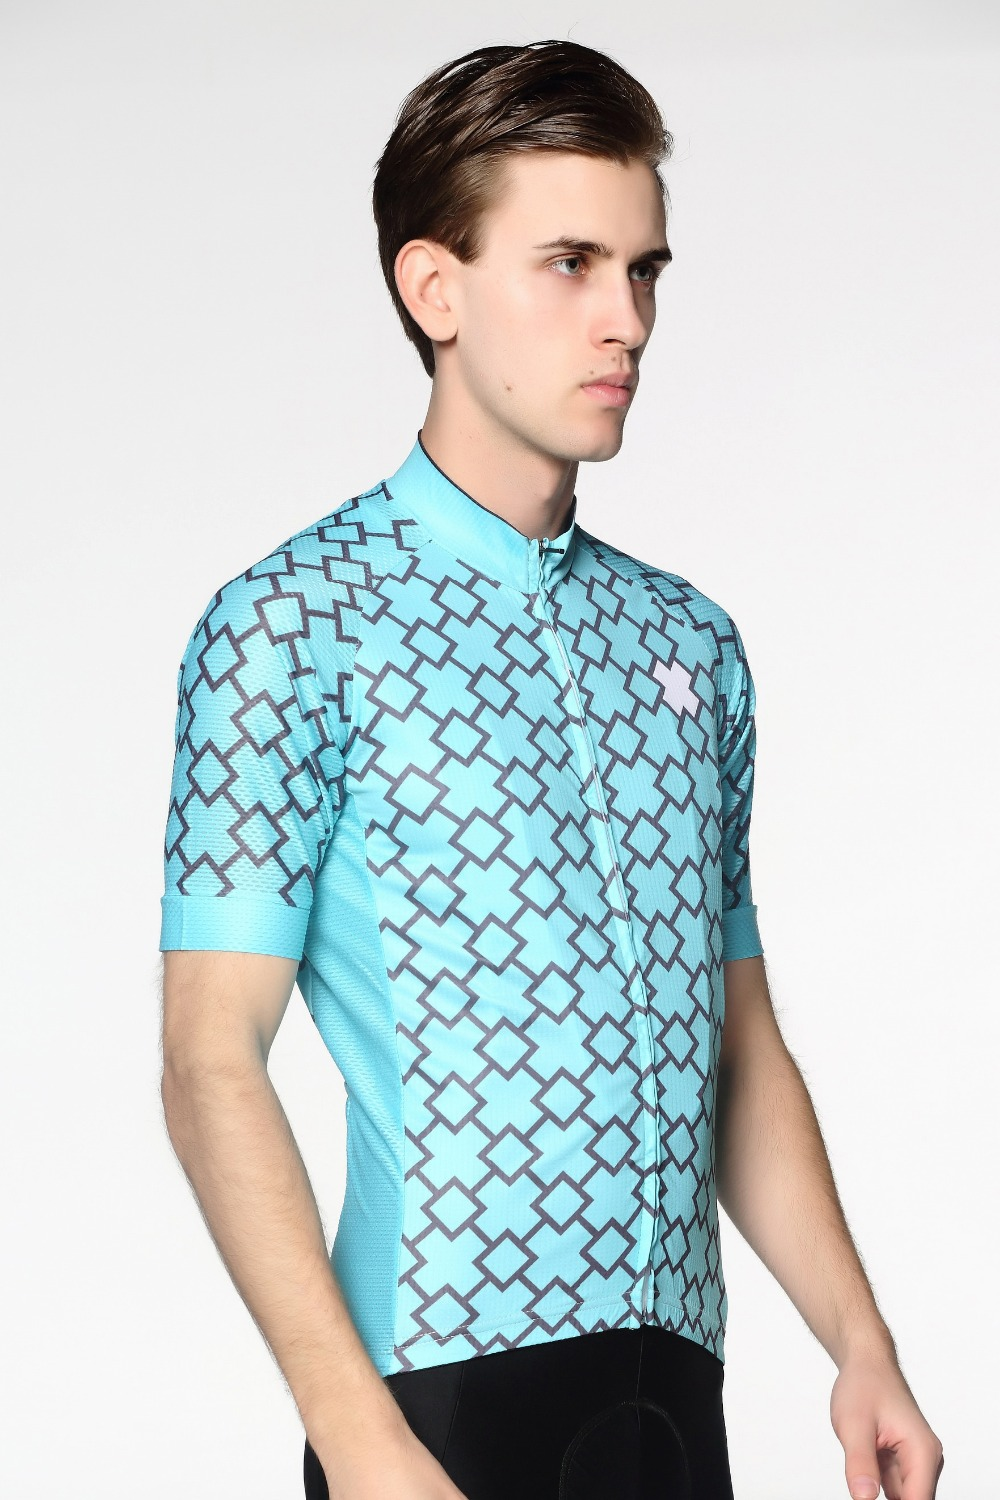 Cycling Bike Bicycle Jerseys Quick Dry Breathable Short Sleeve Clothes Sports Jersey Ciclismo Maillot Cycling Clothes